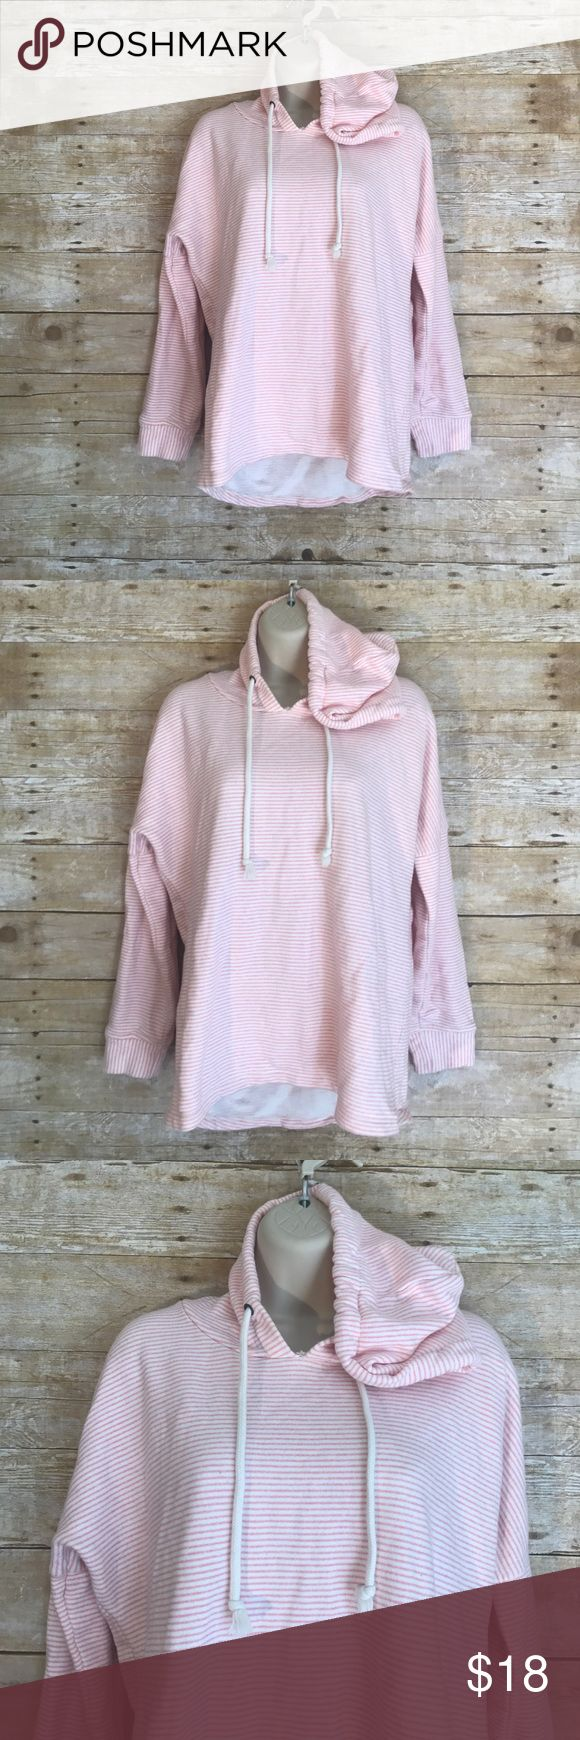 O'Neill pink striped hoodie SZ M cowl neck sweater O'Neill Brand - Size Medium - excellent condition - pink/white striped hoodie ‼️FAST SHIPPING‼️ O'Neill Tops Sweatshirts & Hoodies